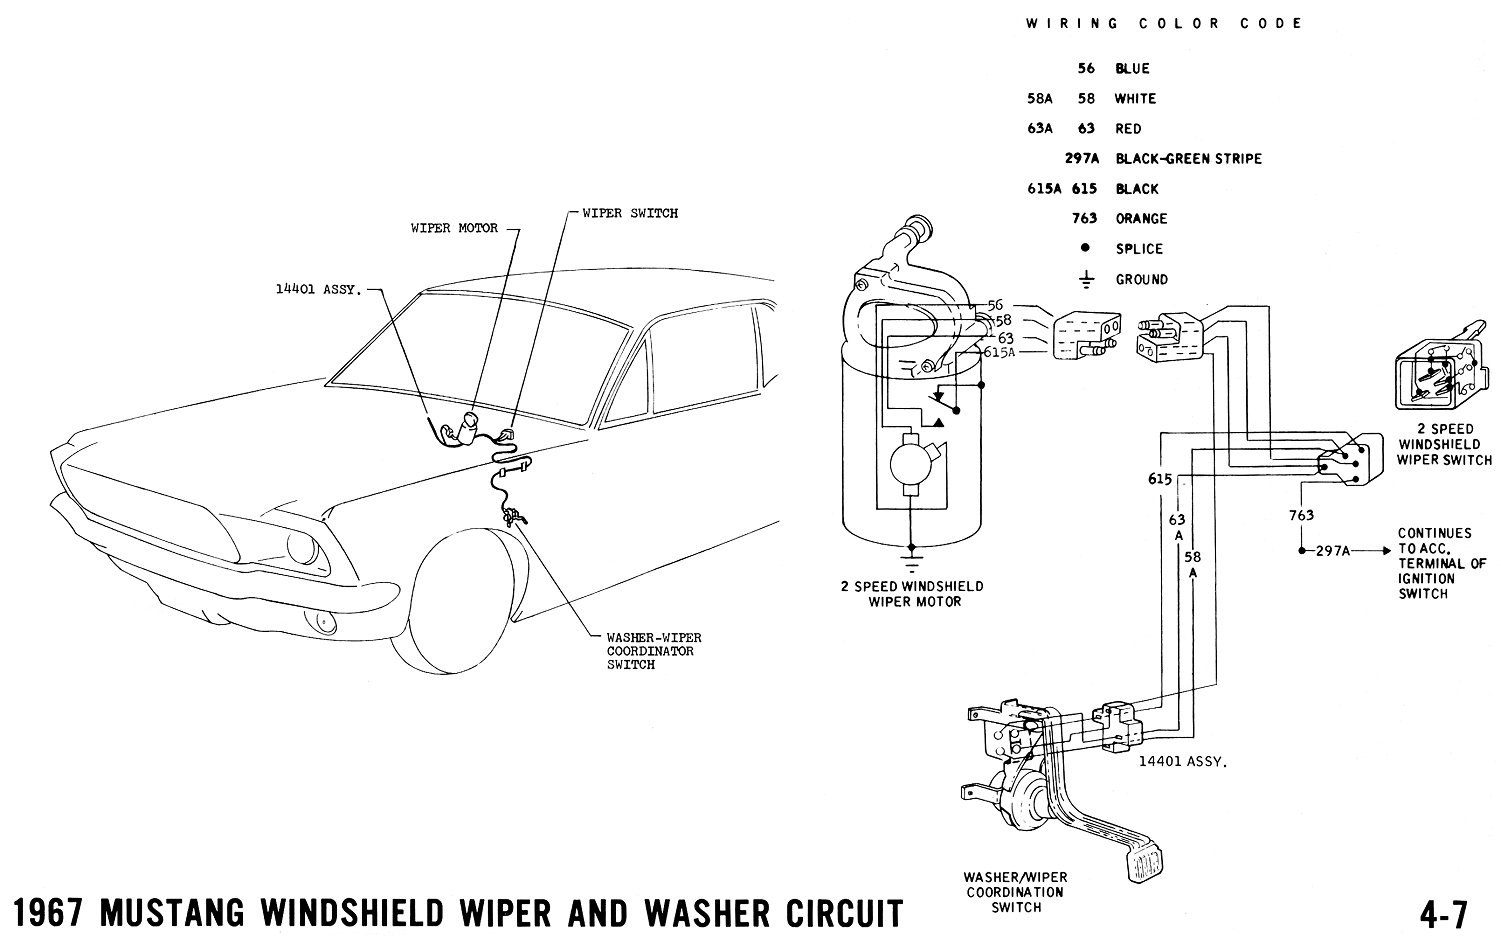 1967 Mustang Wiper Motor Wiring Diagram Simple Schema Jeep Wire 65 Third Level Gm